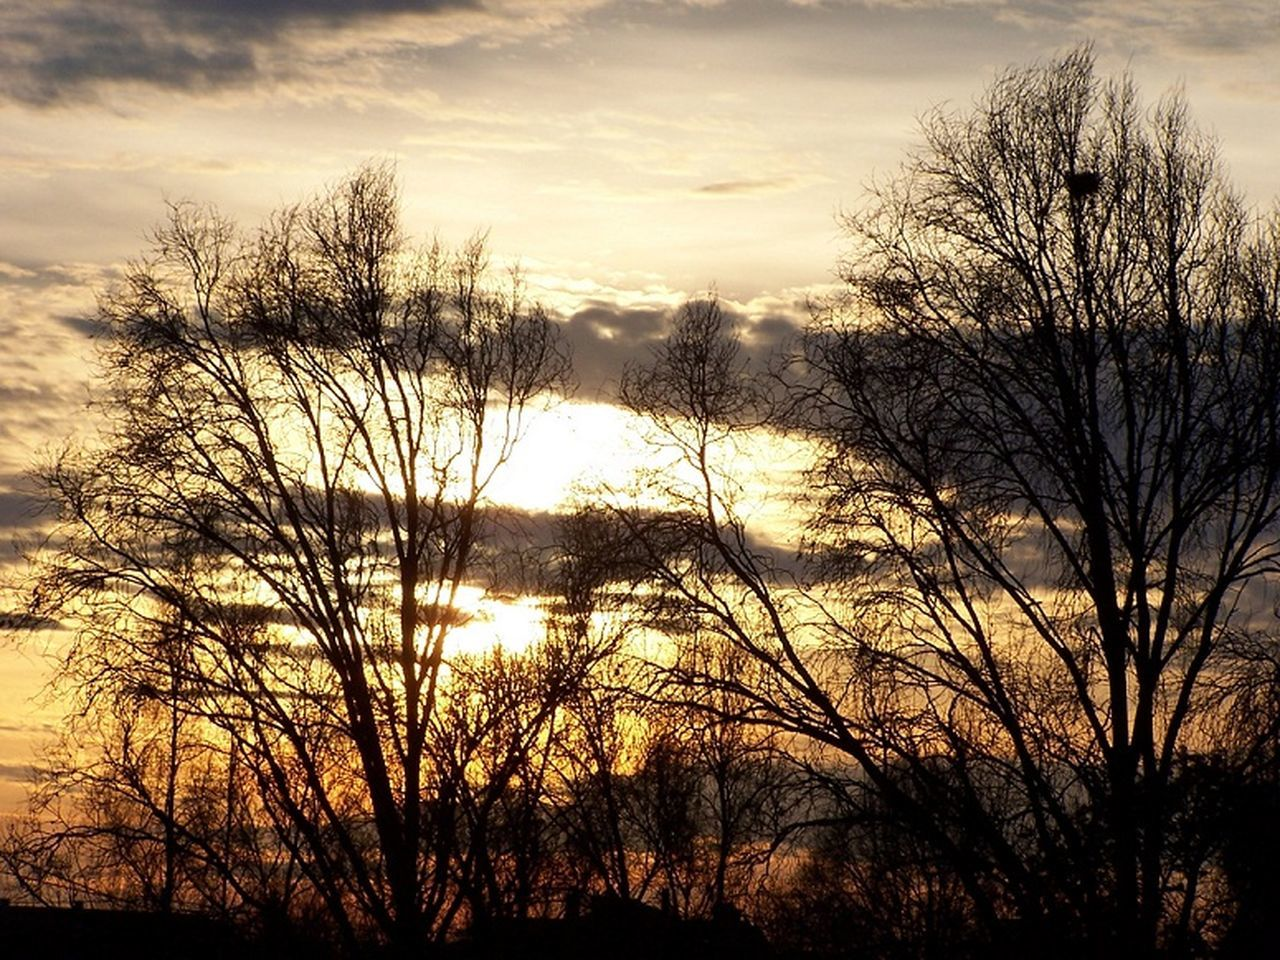 sunset, bare tree, tree, beauty in nature, nature, tranquil scene, scenics, tranquility, sky, silhouette, outdoors, no people, landscape, travel destinations, branch, water, day